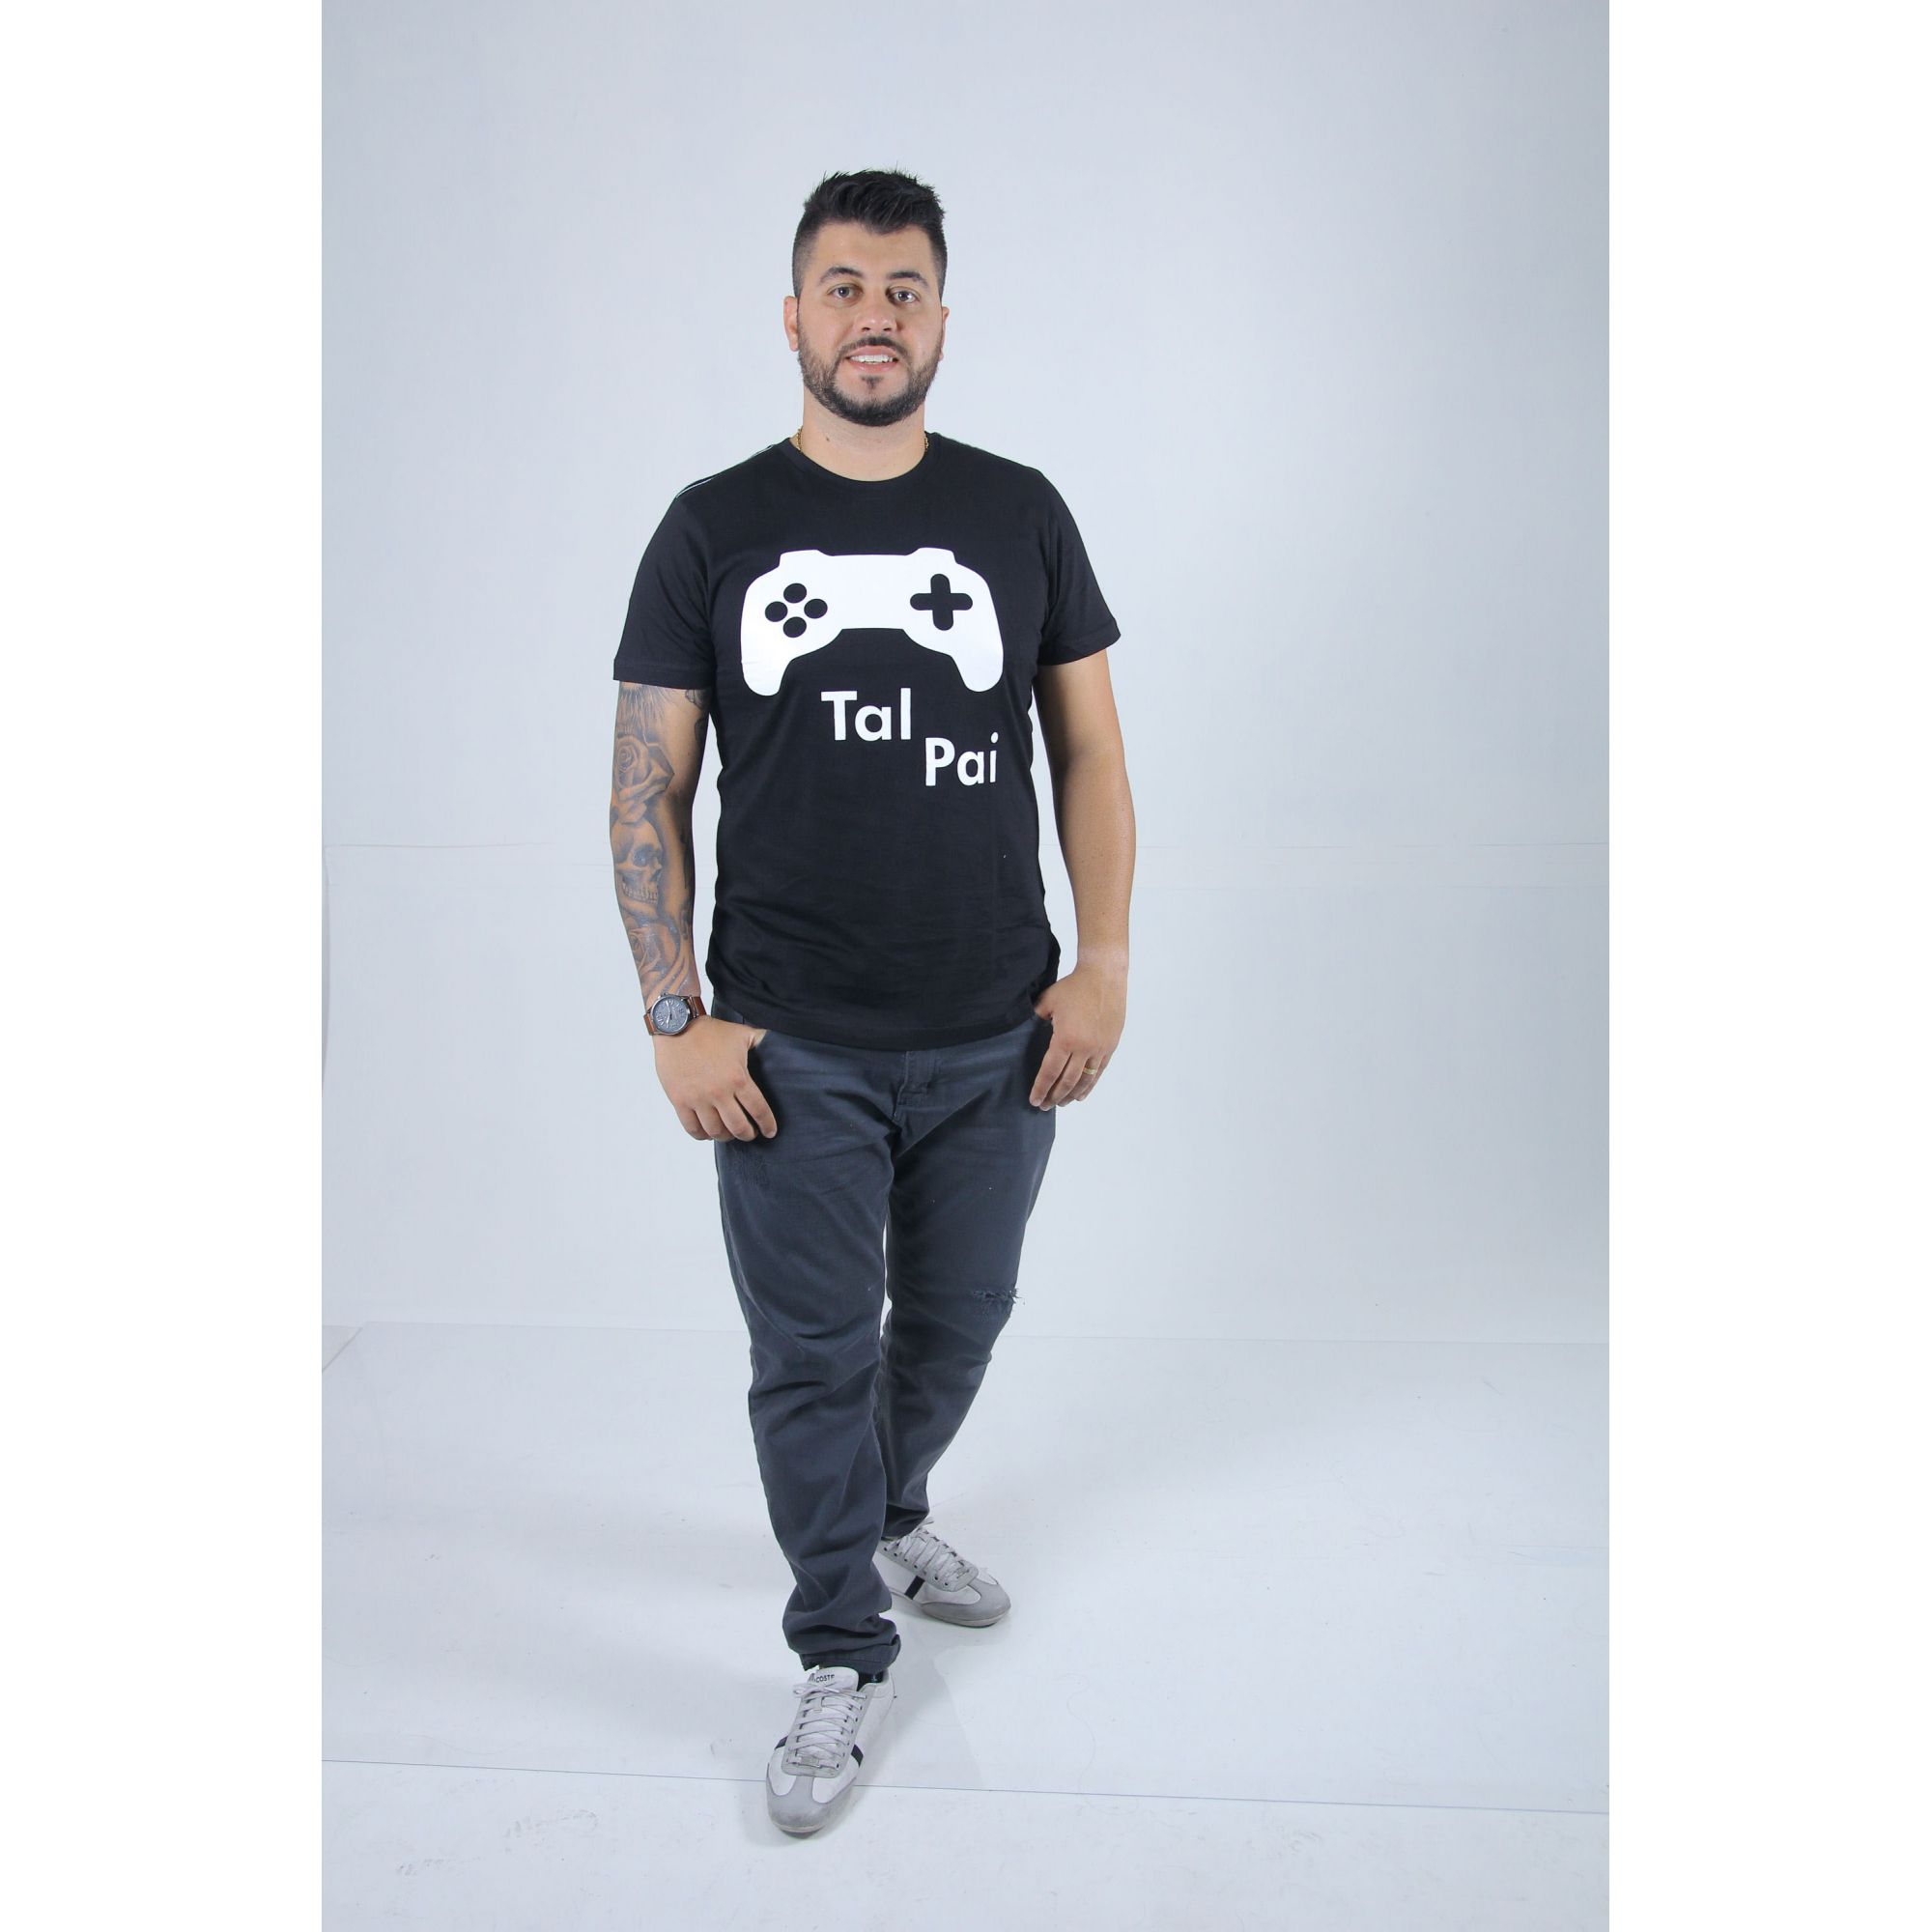 Camiseta Tal Pai Game  - Heitor Fashion Brazil